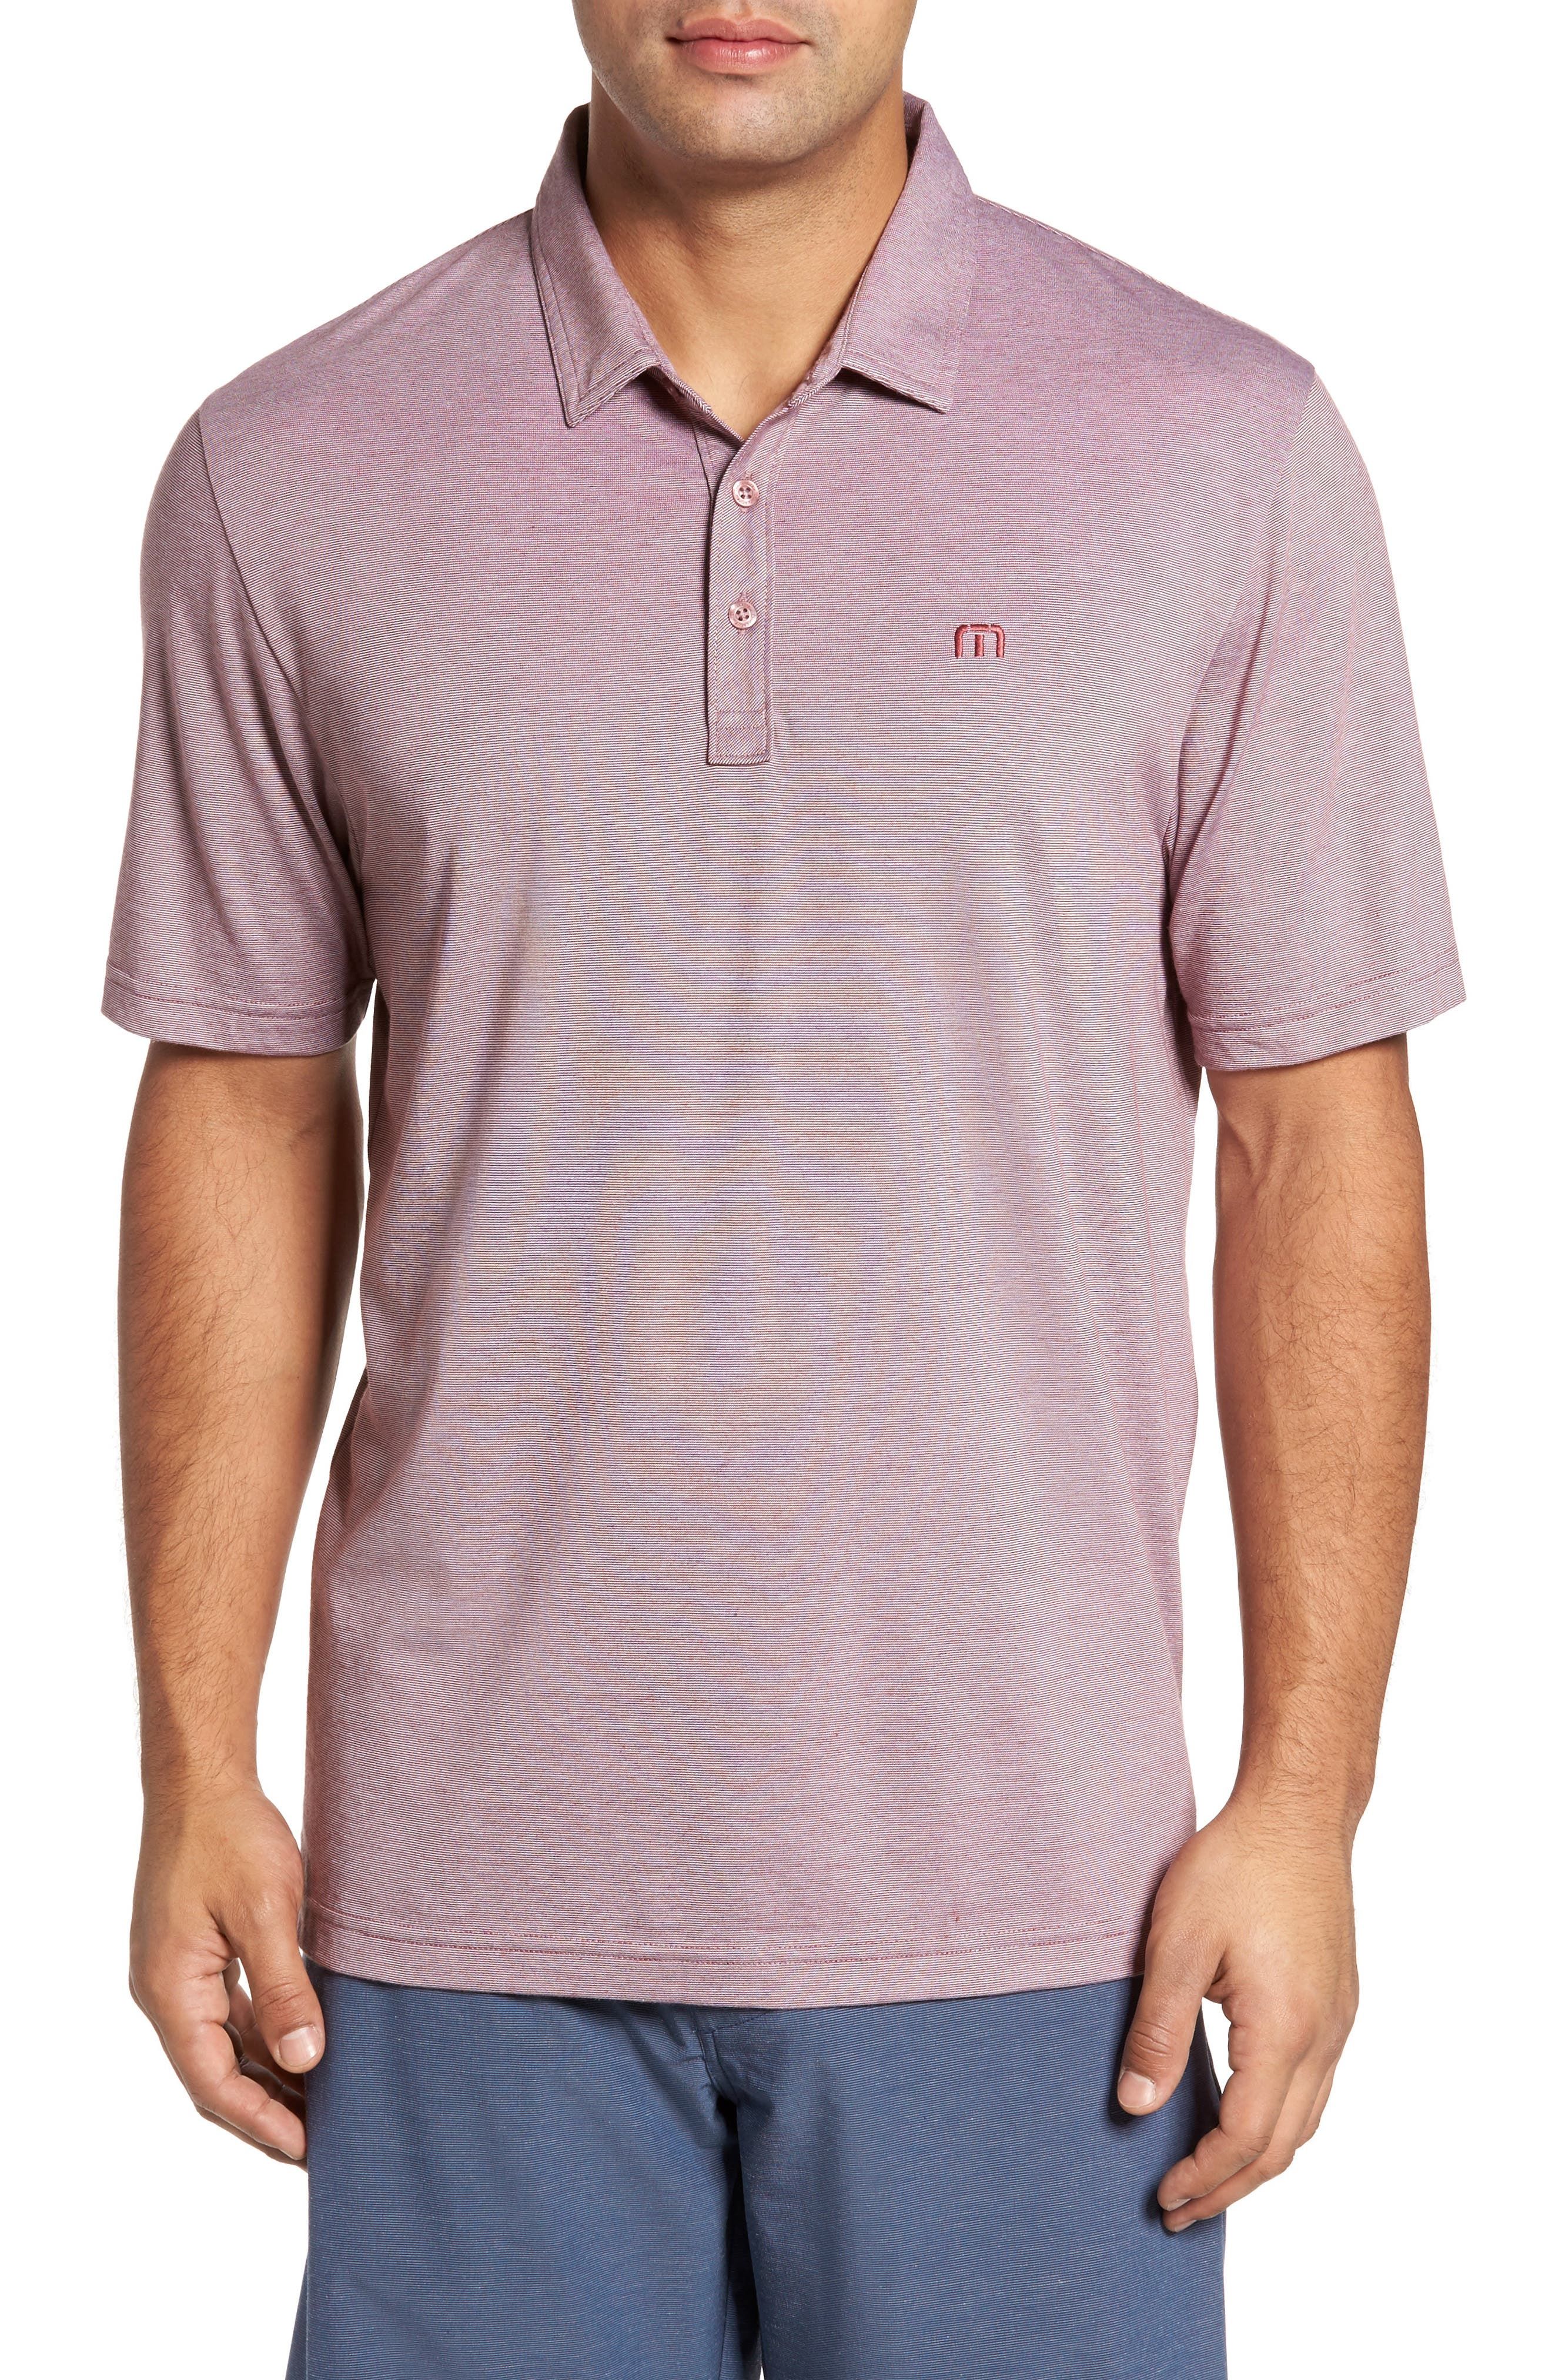 Travis Mathew The Zinna Performance Polo